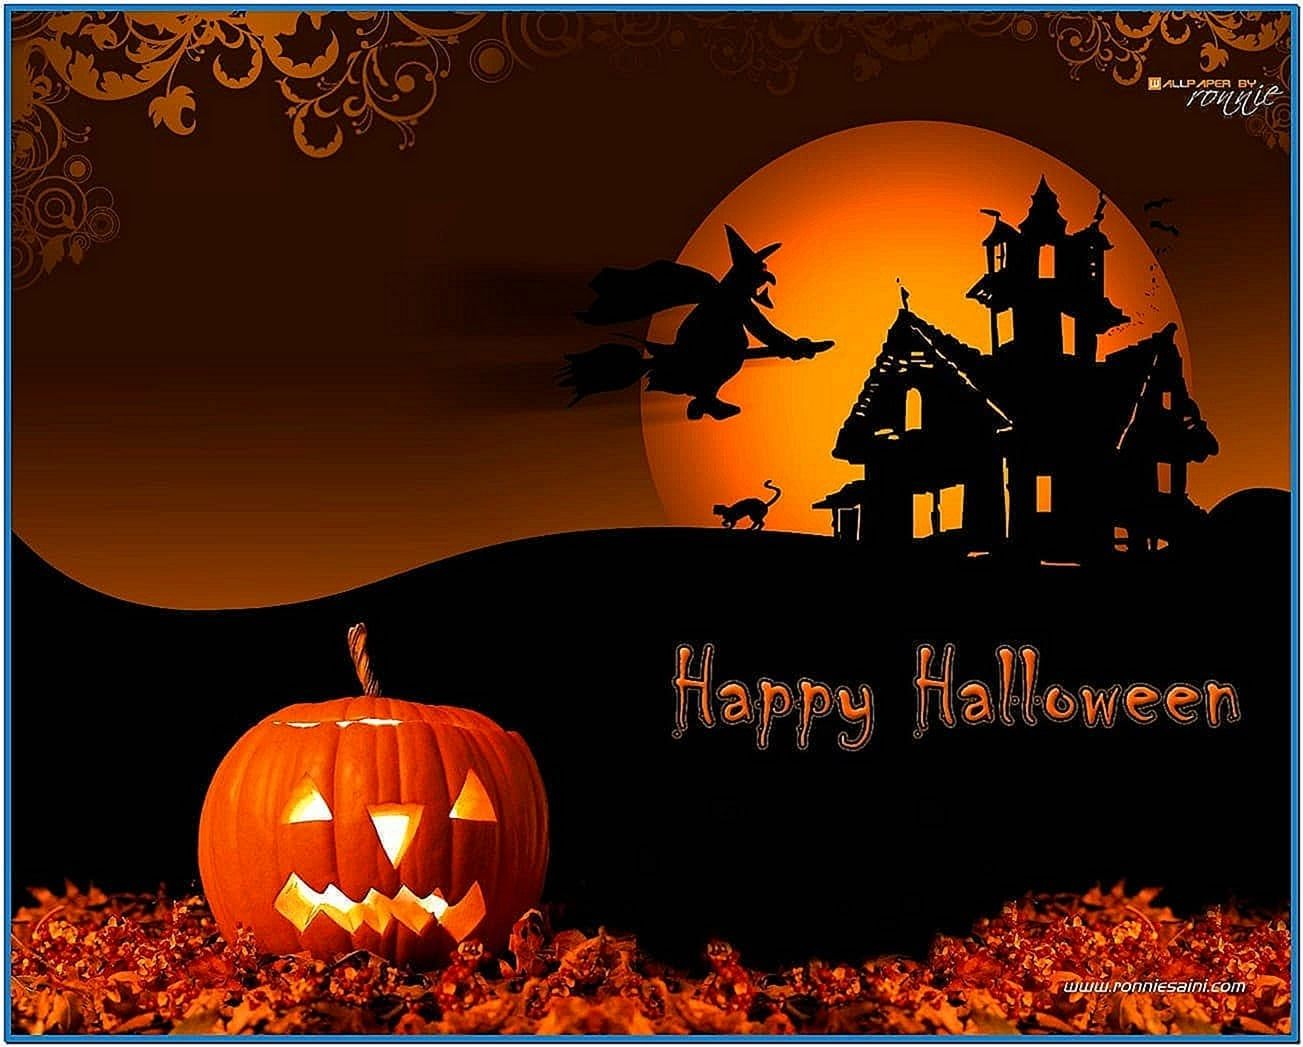 Pin By Kim Parker On Halloween Screensavers 2019 Wallpapers Fun Halloween Decor Halloween Facts Halloween Wallpaper